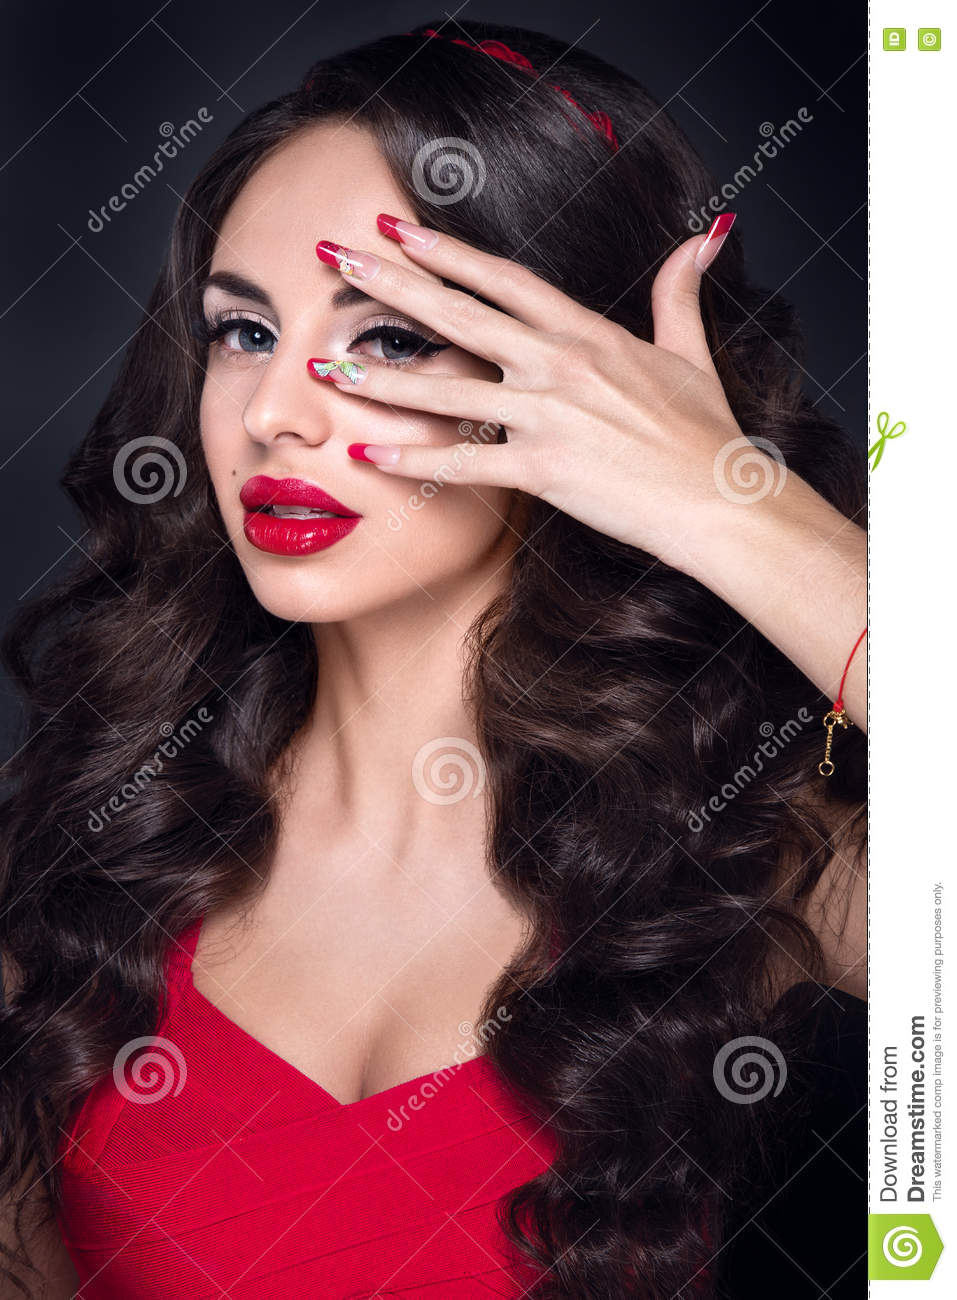 Lady In Red Beautiful Woman Portrait In Red Dress With Red Lips